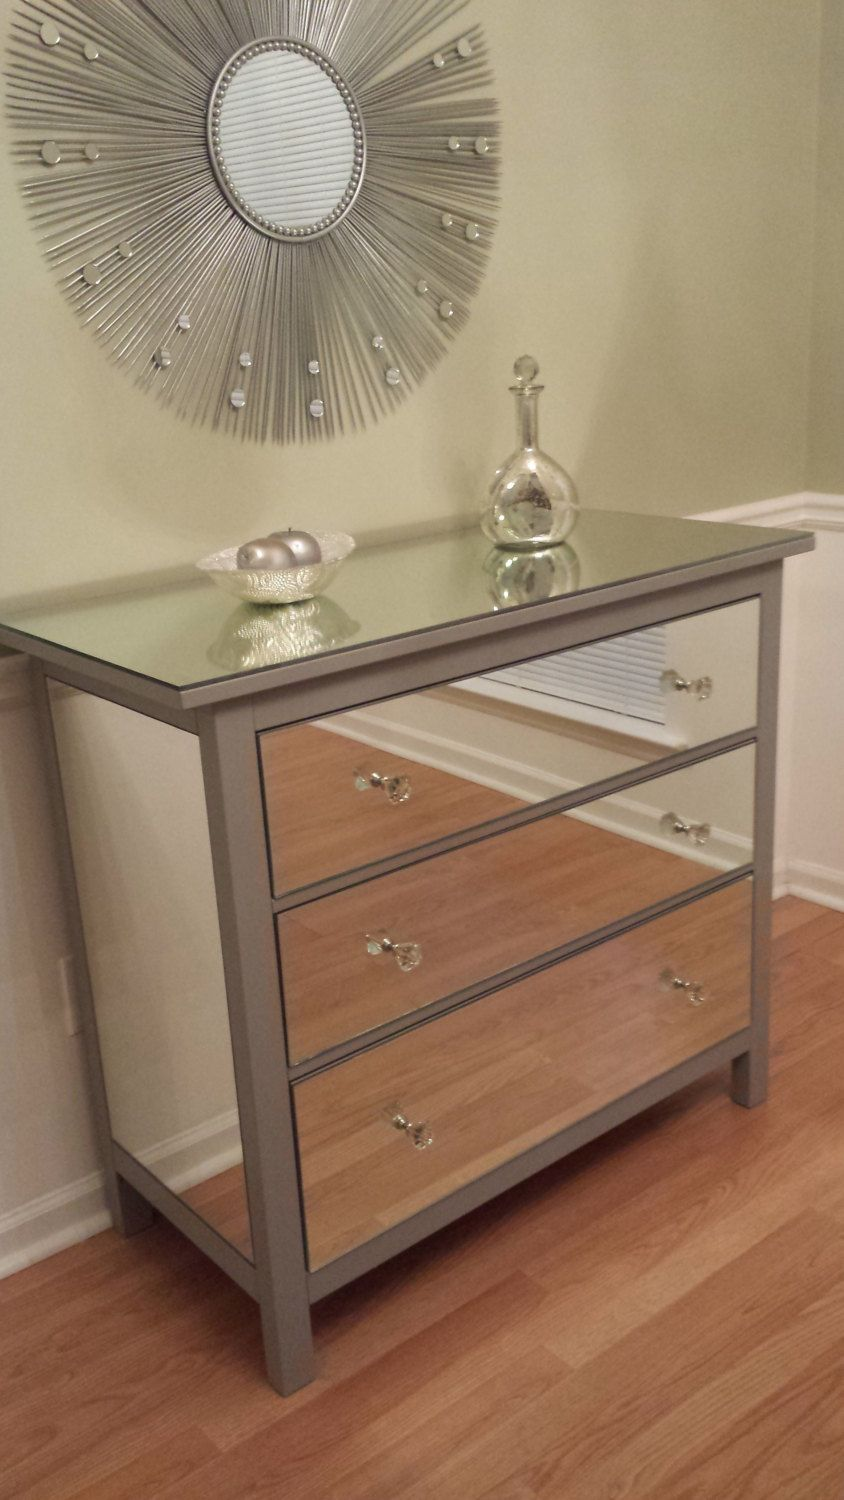 Ikea mirrored furniture Rose Gold Mirrored Dresser Silver Upcycled Ikea Drawer Mirror Dresser By Anareflections On Etsy Pinterest Mirrored Dresser Silver Upcycled Ikea Drawer Mirror Dresser By